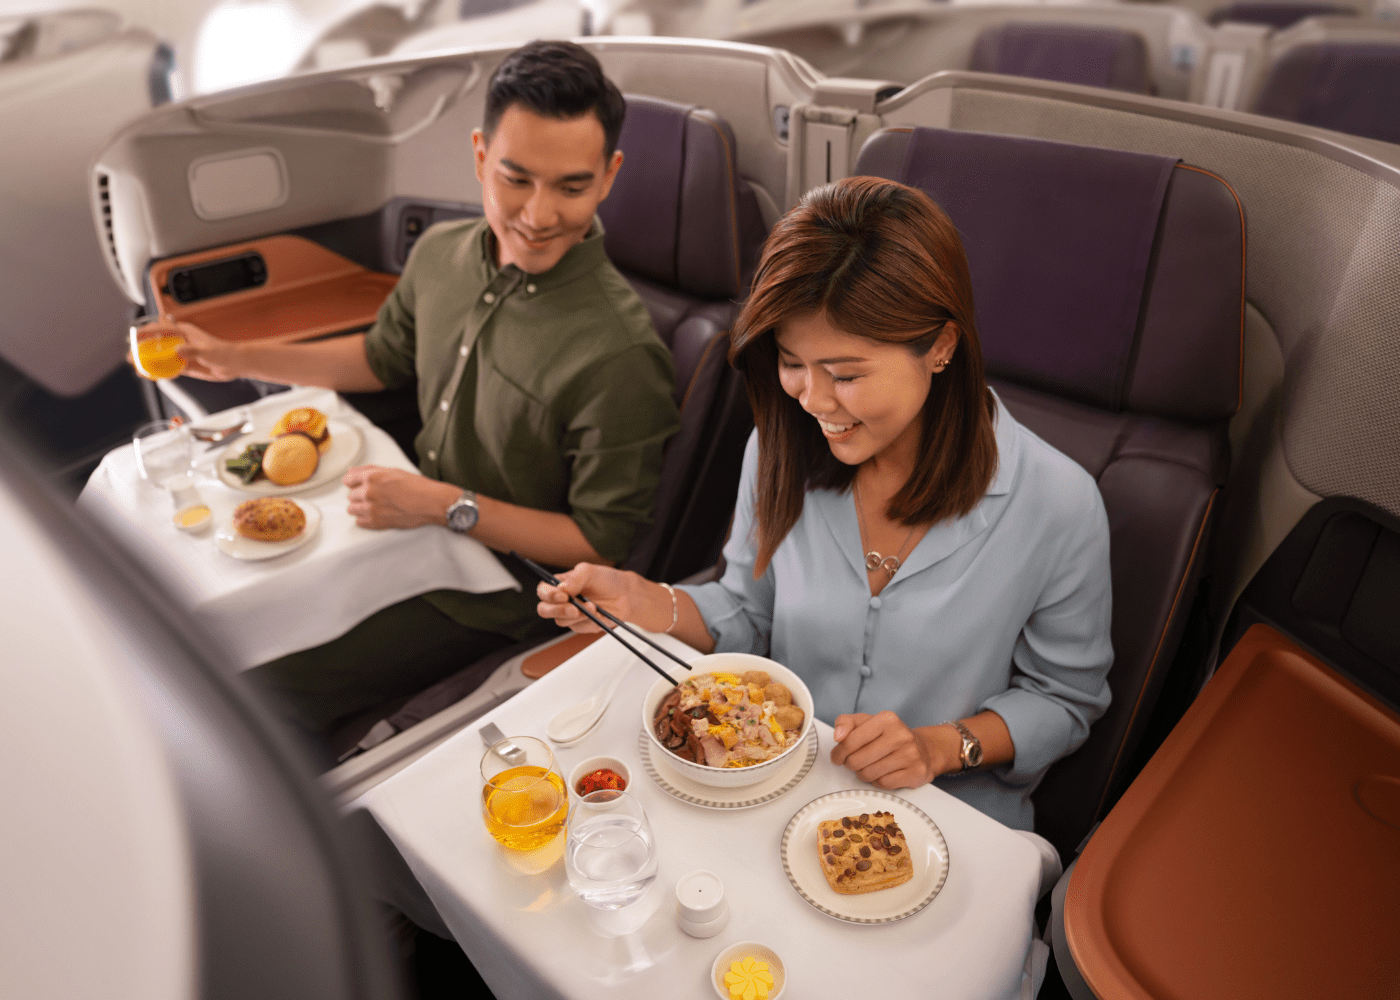 Singapore Airlines Drops 'Flights to Nowhere' Plan After Outcry Over Fuel Wastage